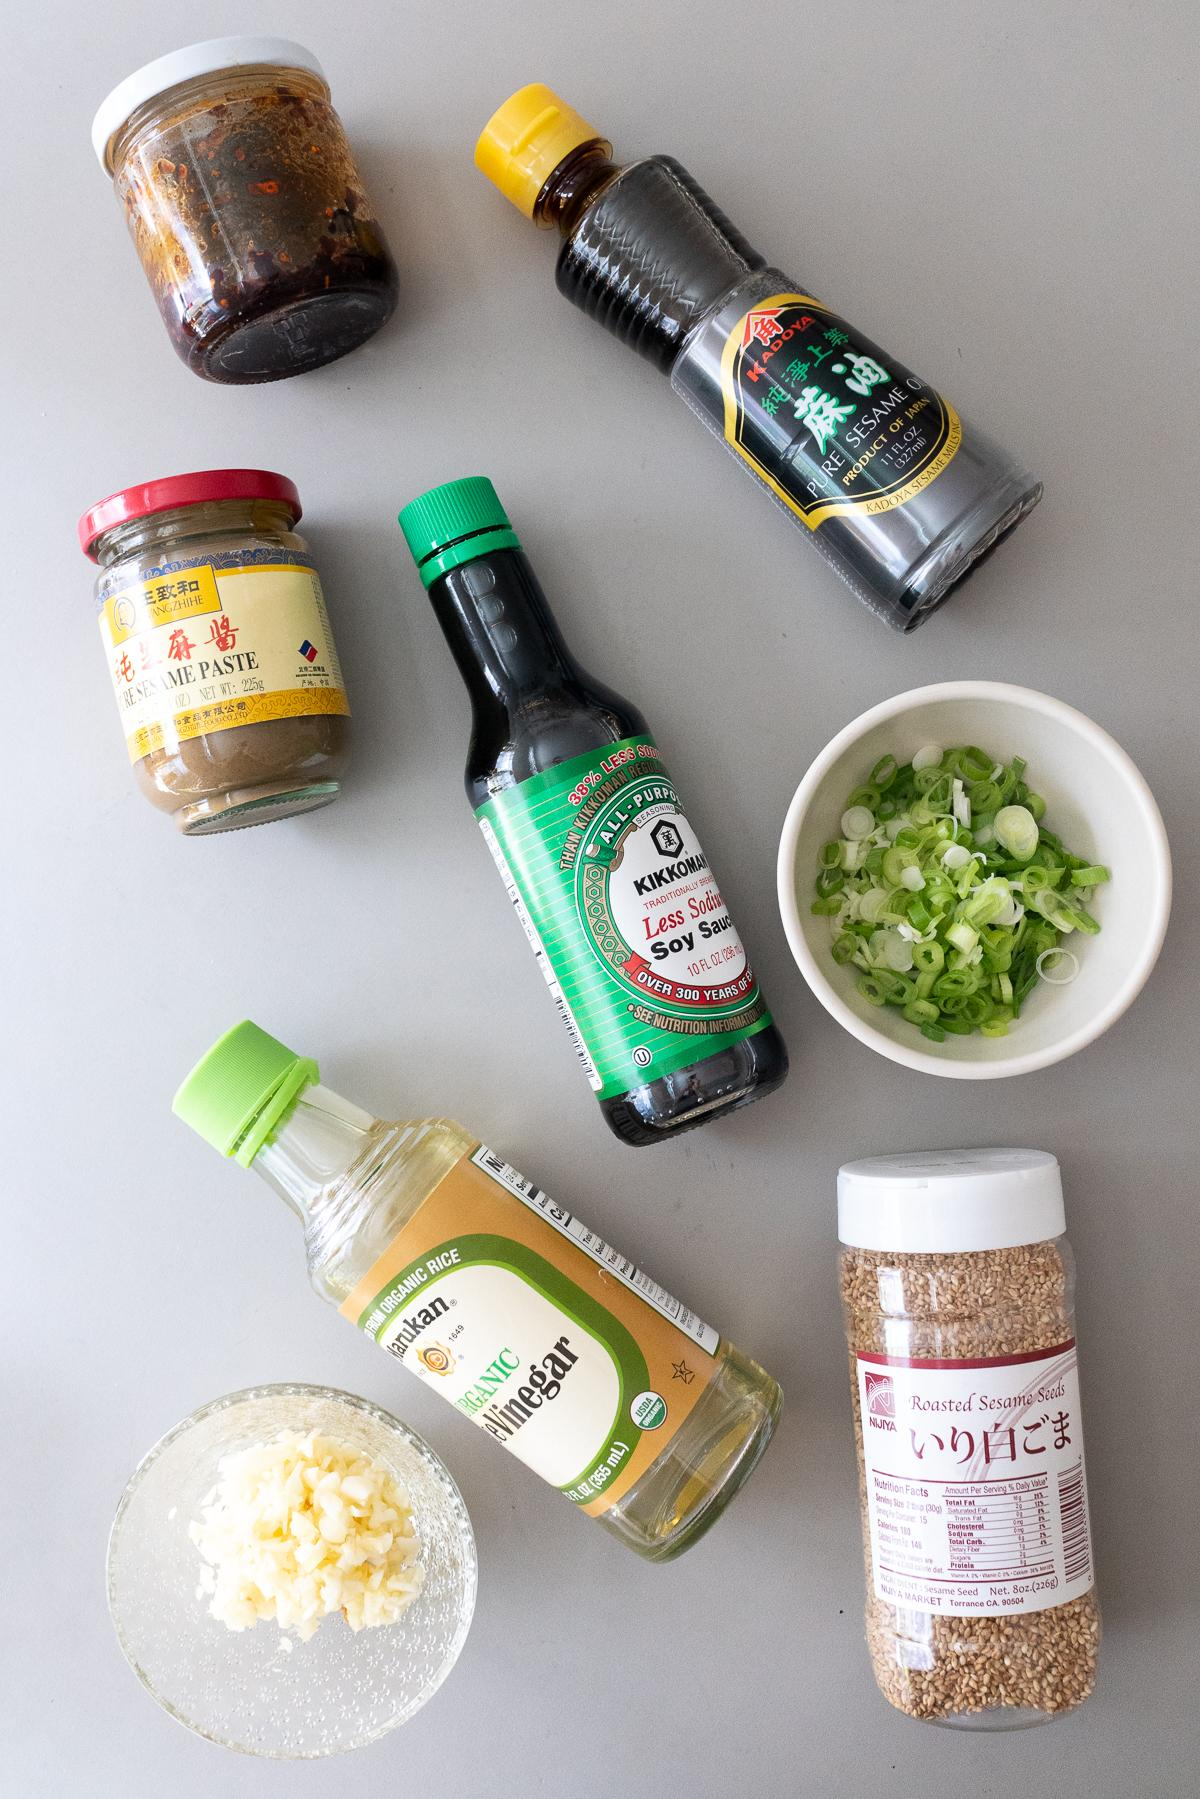 Ingredients for making Sesame Sauce (to eat with pork wontons). Soy sauce, rice vinegar, sesame oil, Chinese sesame paste, garlic, green onions, chili oil, and sesame seeds